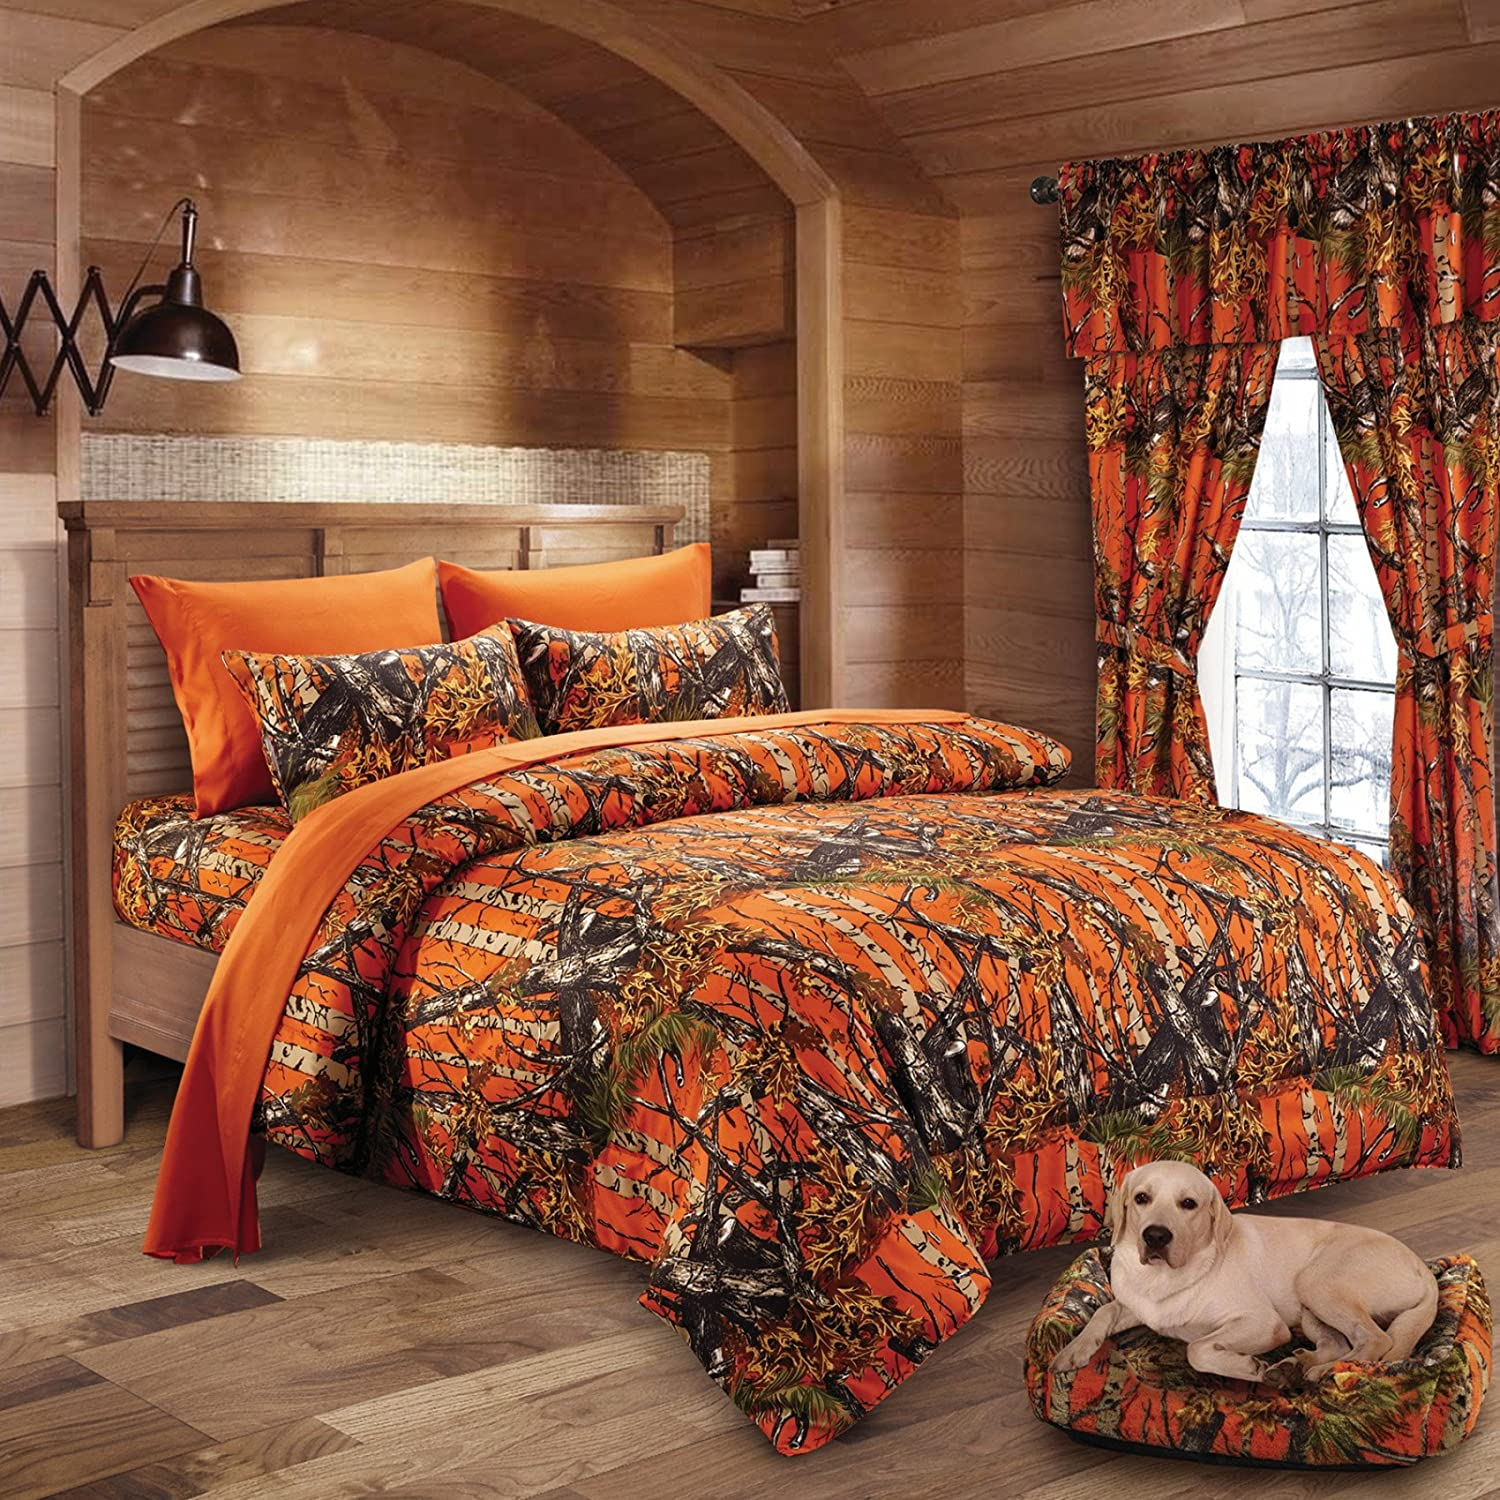 Hunter Camo Comforter, Sheet, & Pillowcase Set Twin, Orange